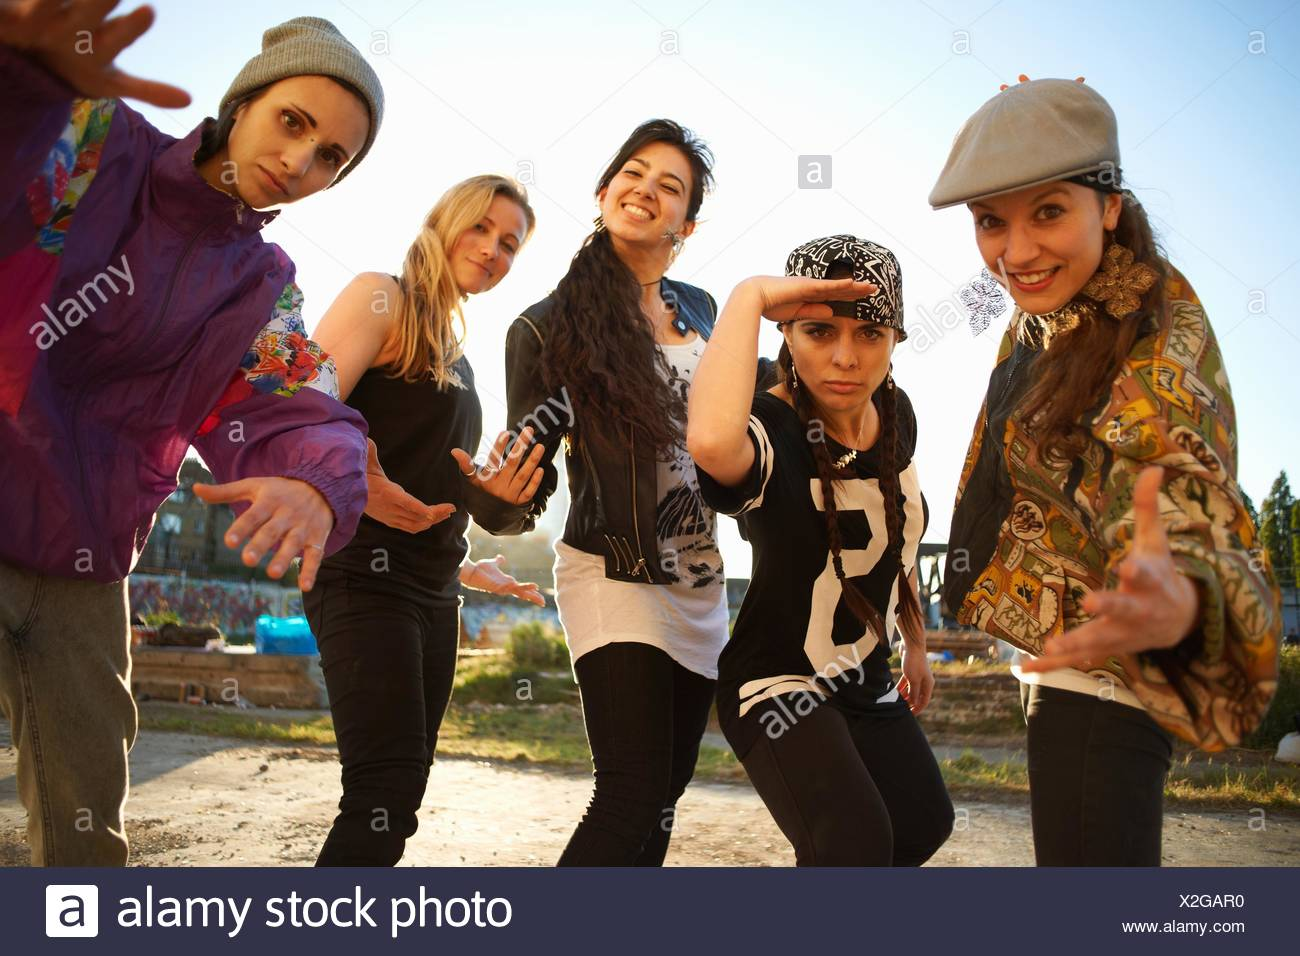 Young women standing gesturing to camera - Stock Image